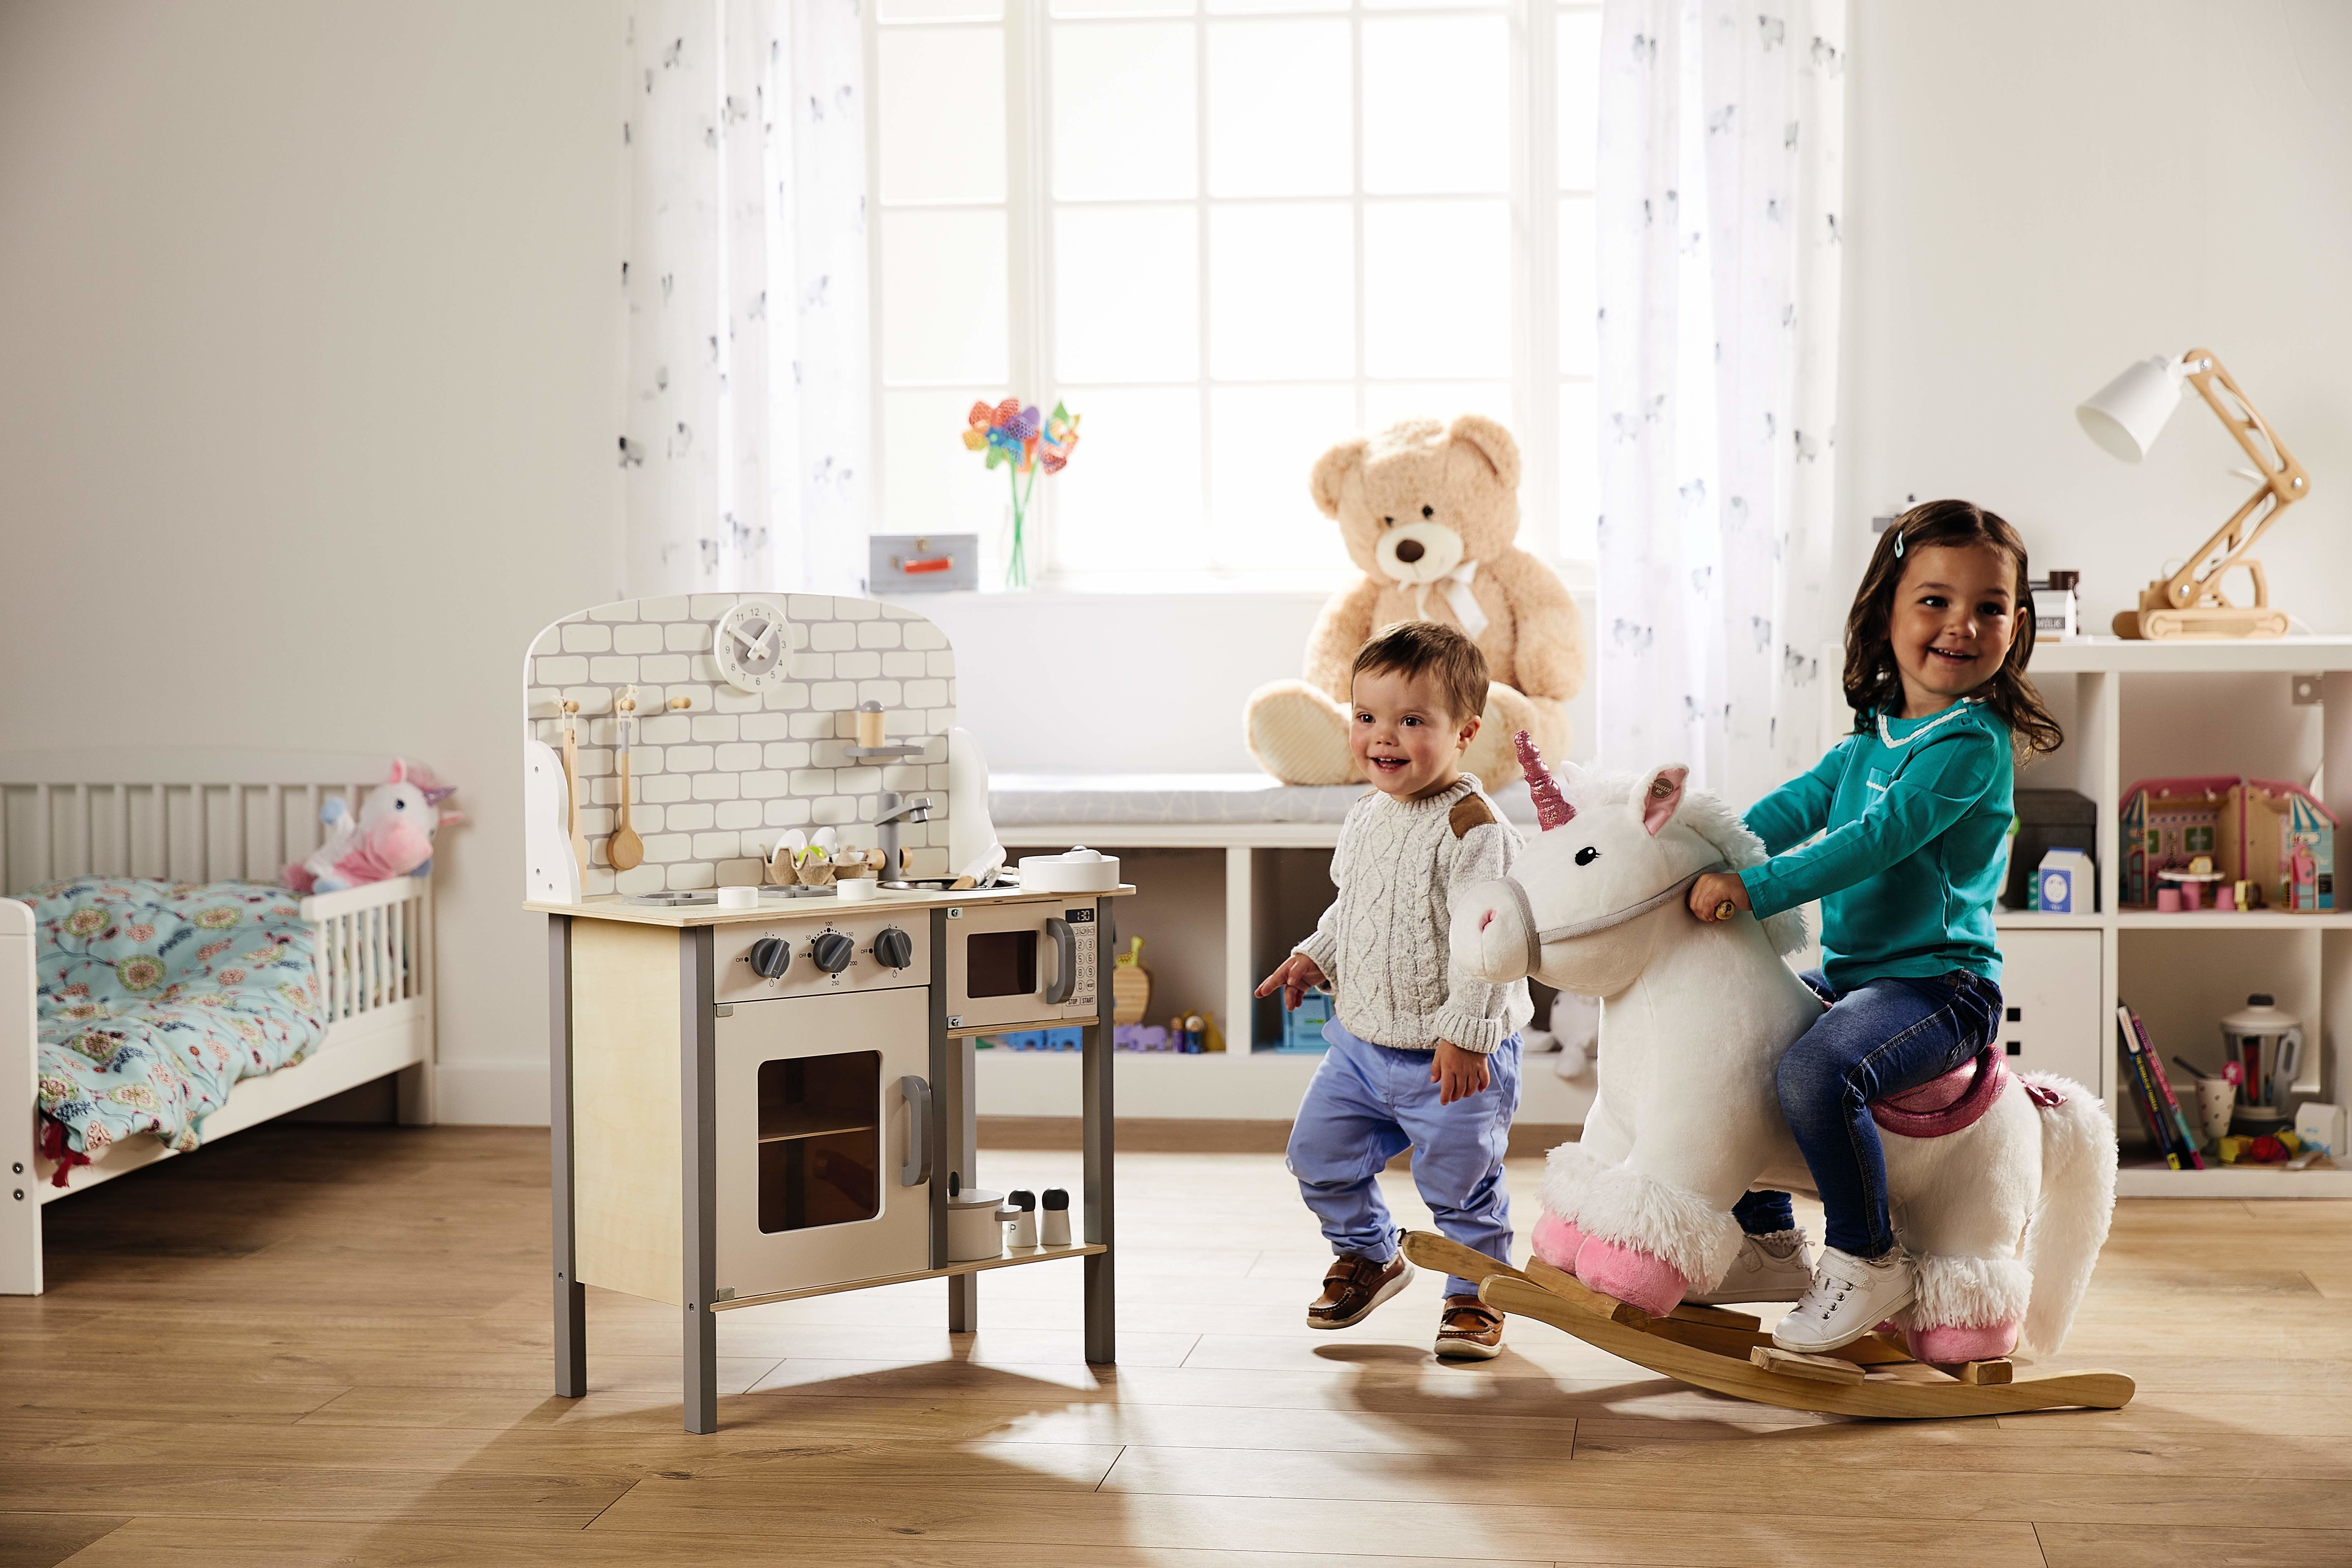 Aldi Opens Christmas Toy Shop And Predicts Wooden Kitchen Will Be Best Buy This